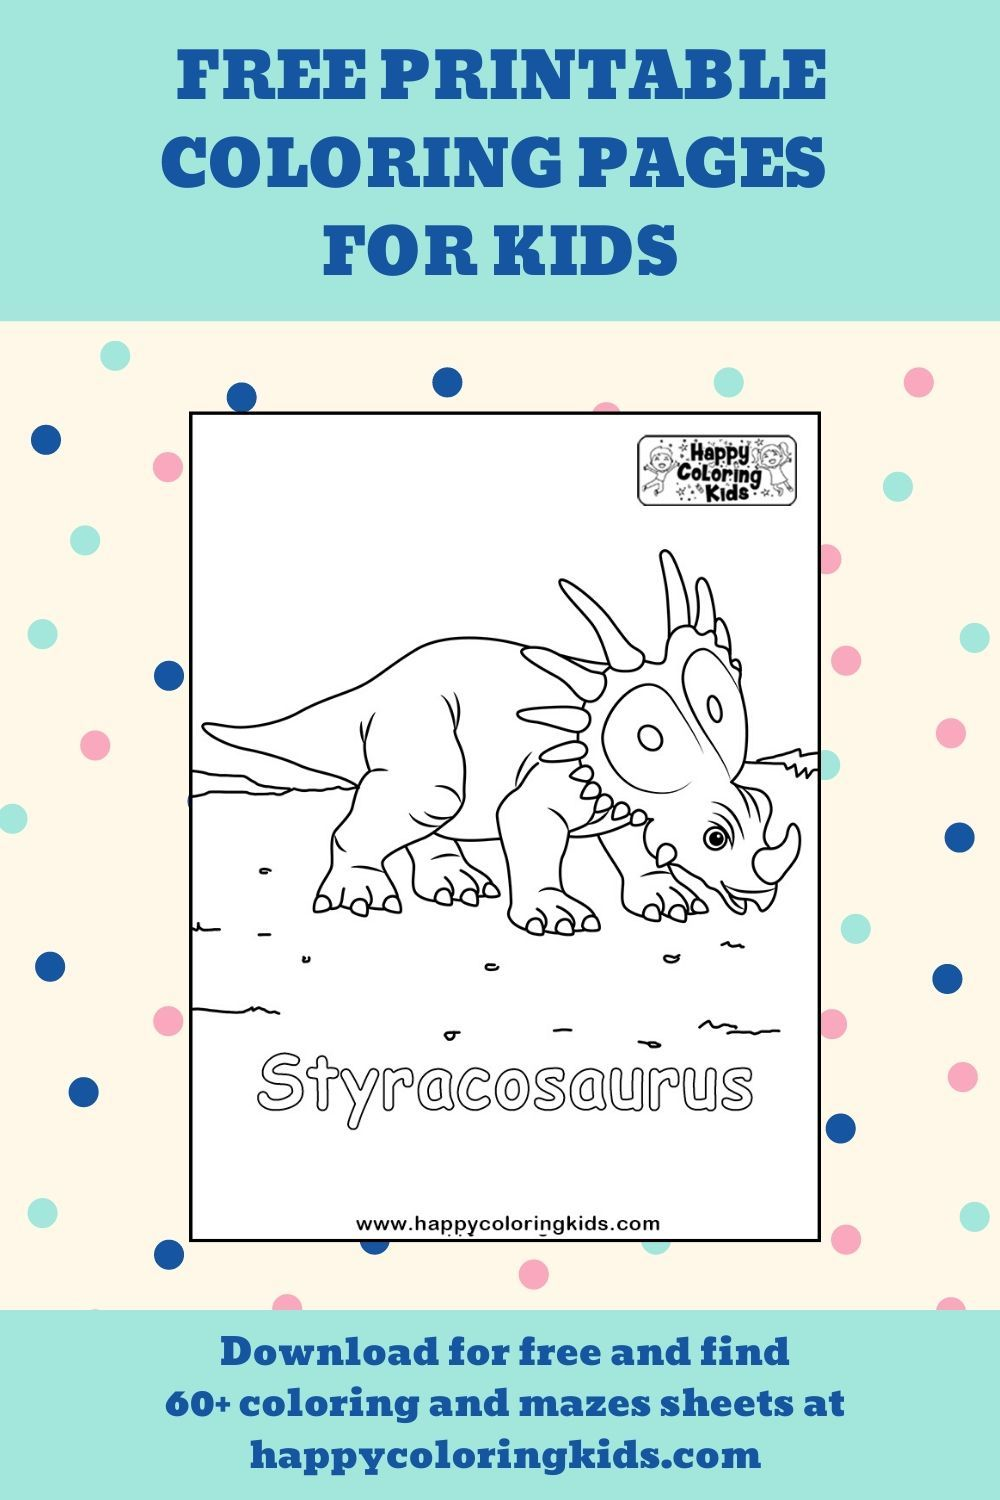 Free Printable Coloring Pages Of Dinosaurs Styracosaurus Coloring Pages For Kids Coloring Pages Printable Coloring Pages